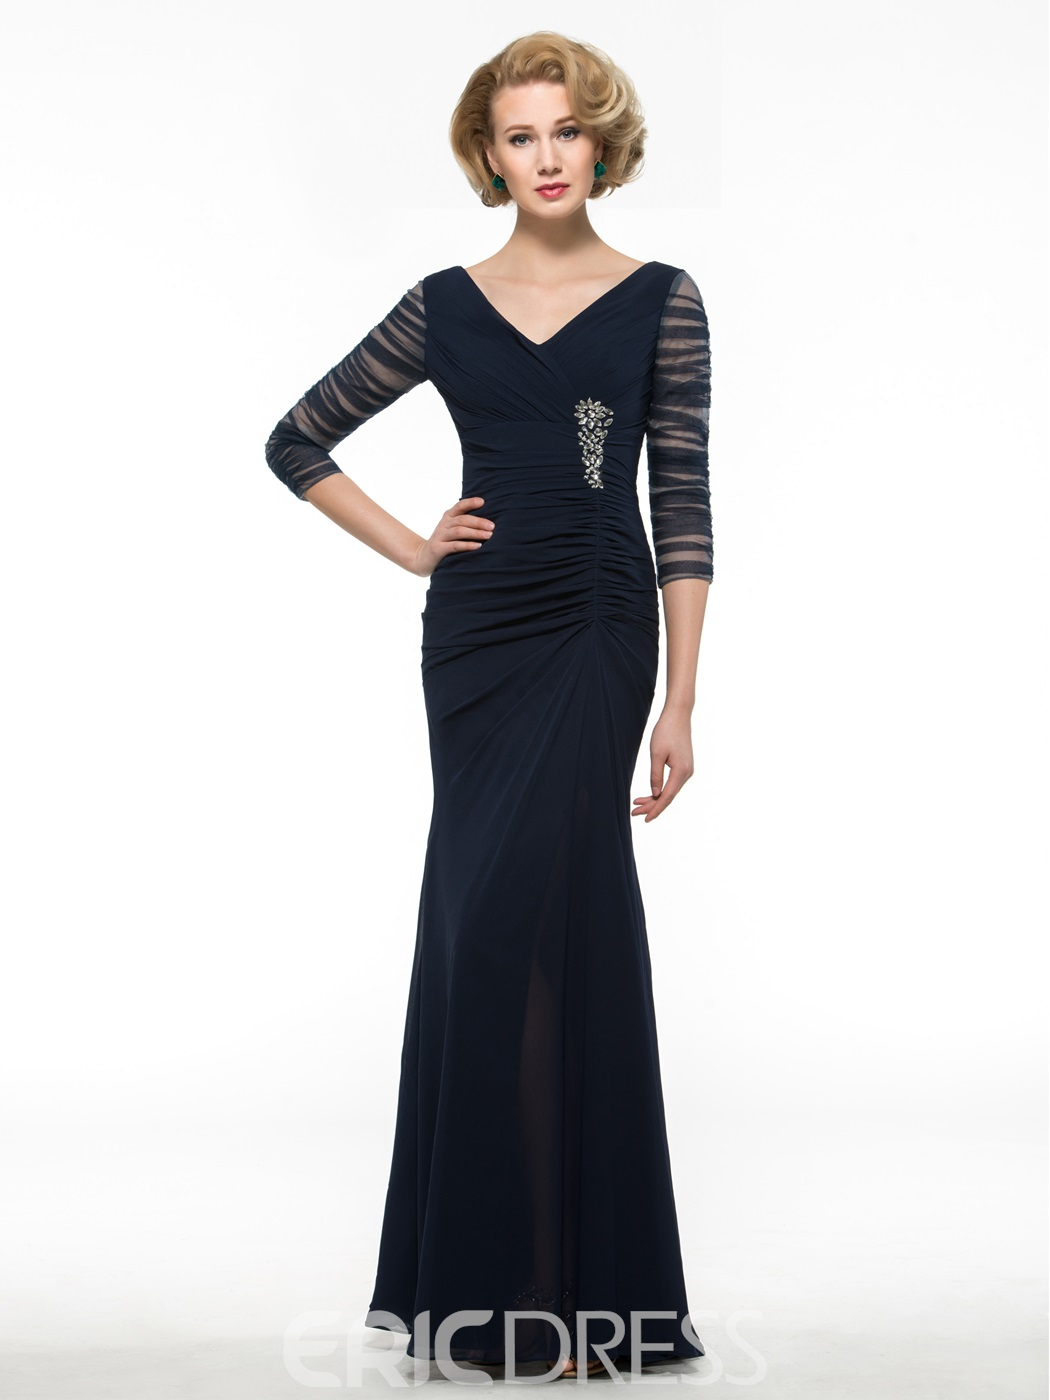 Ericdress High Quality V Neck Long Mother Of The Bride Dress